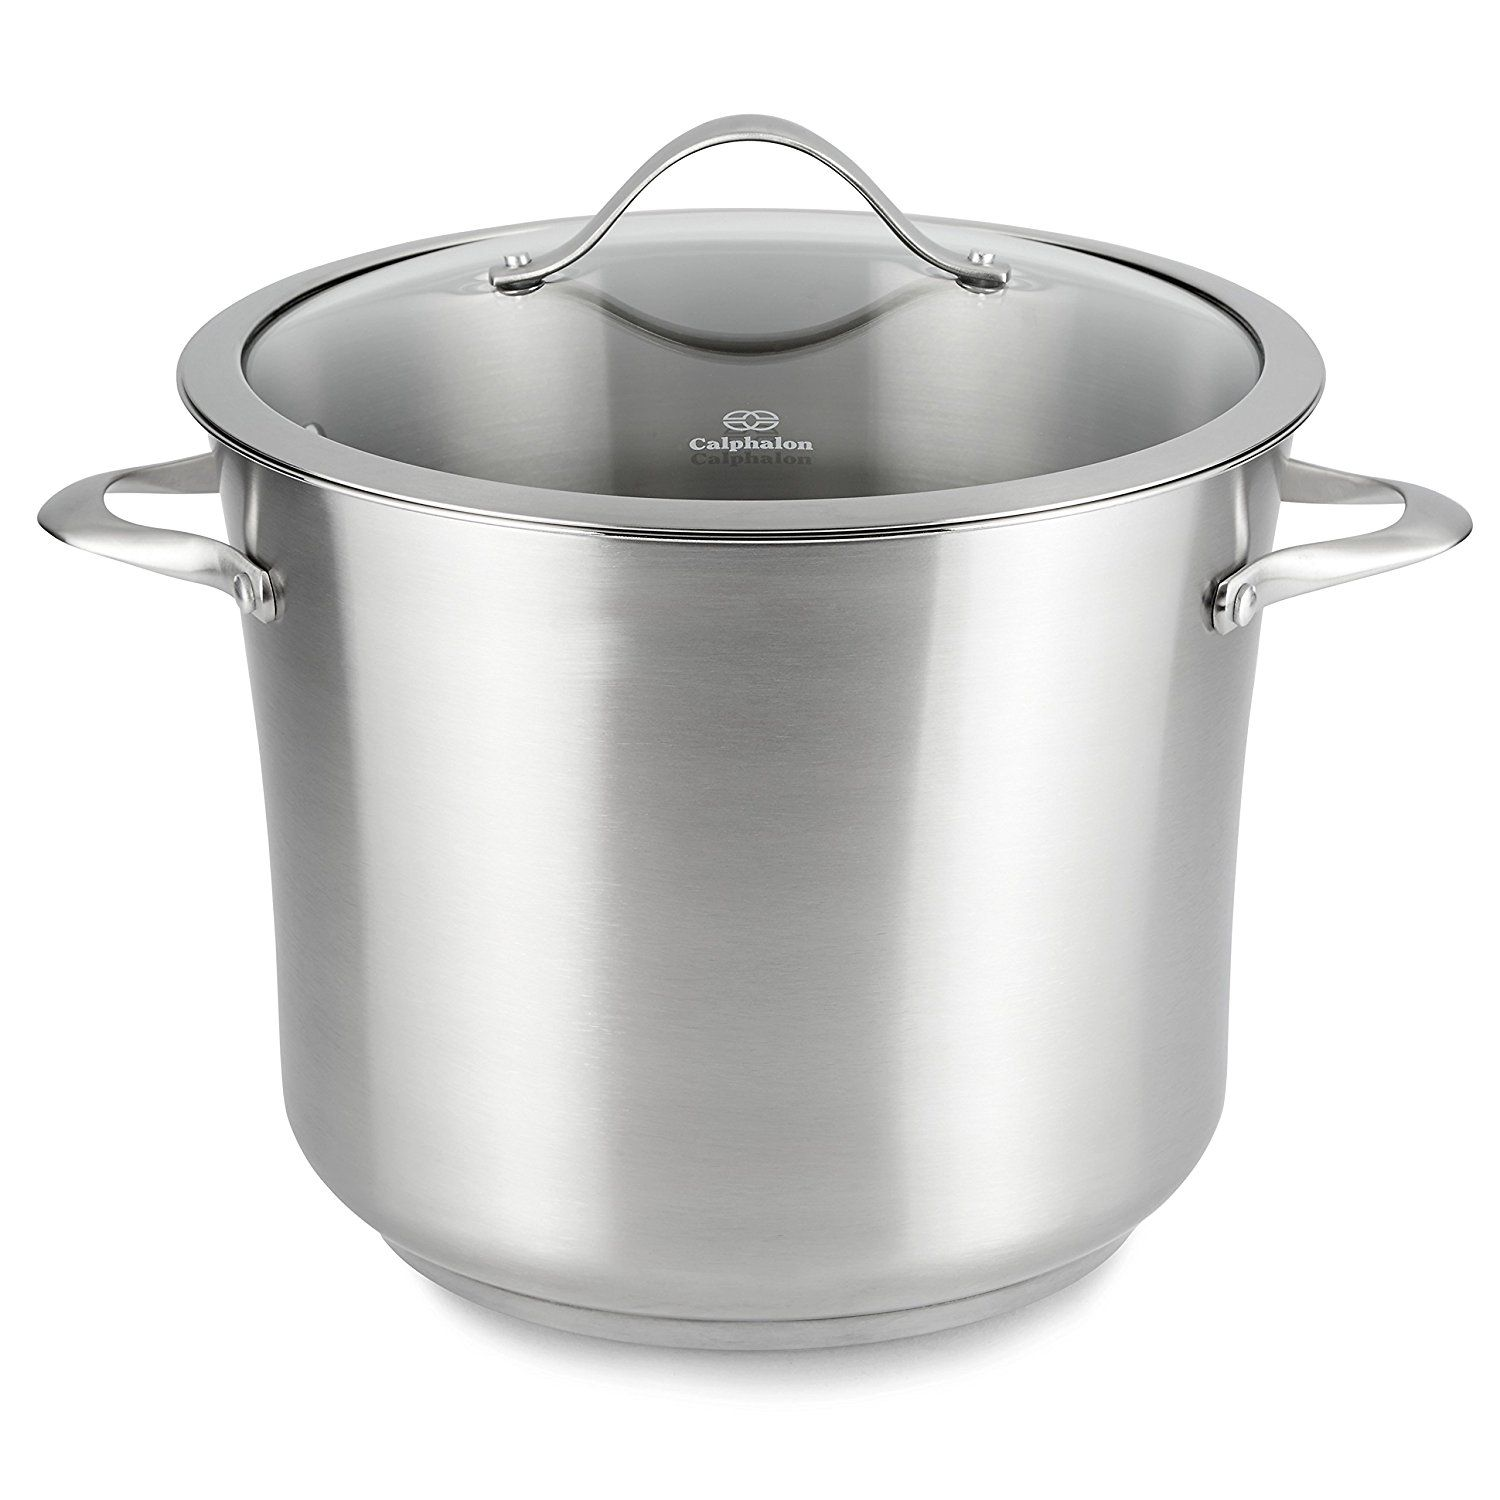 Cookware gt see more select by calphalon ceramic nonstick 8 inch an - Calphalon Contemporary Stainless Steel 12 Quart Stockpot You Can Find Out More Details